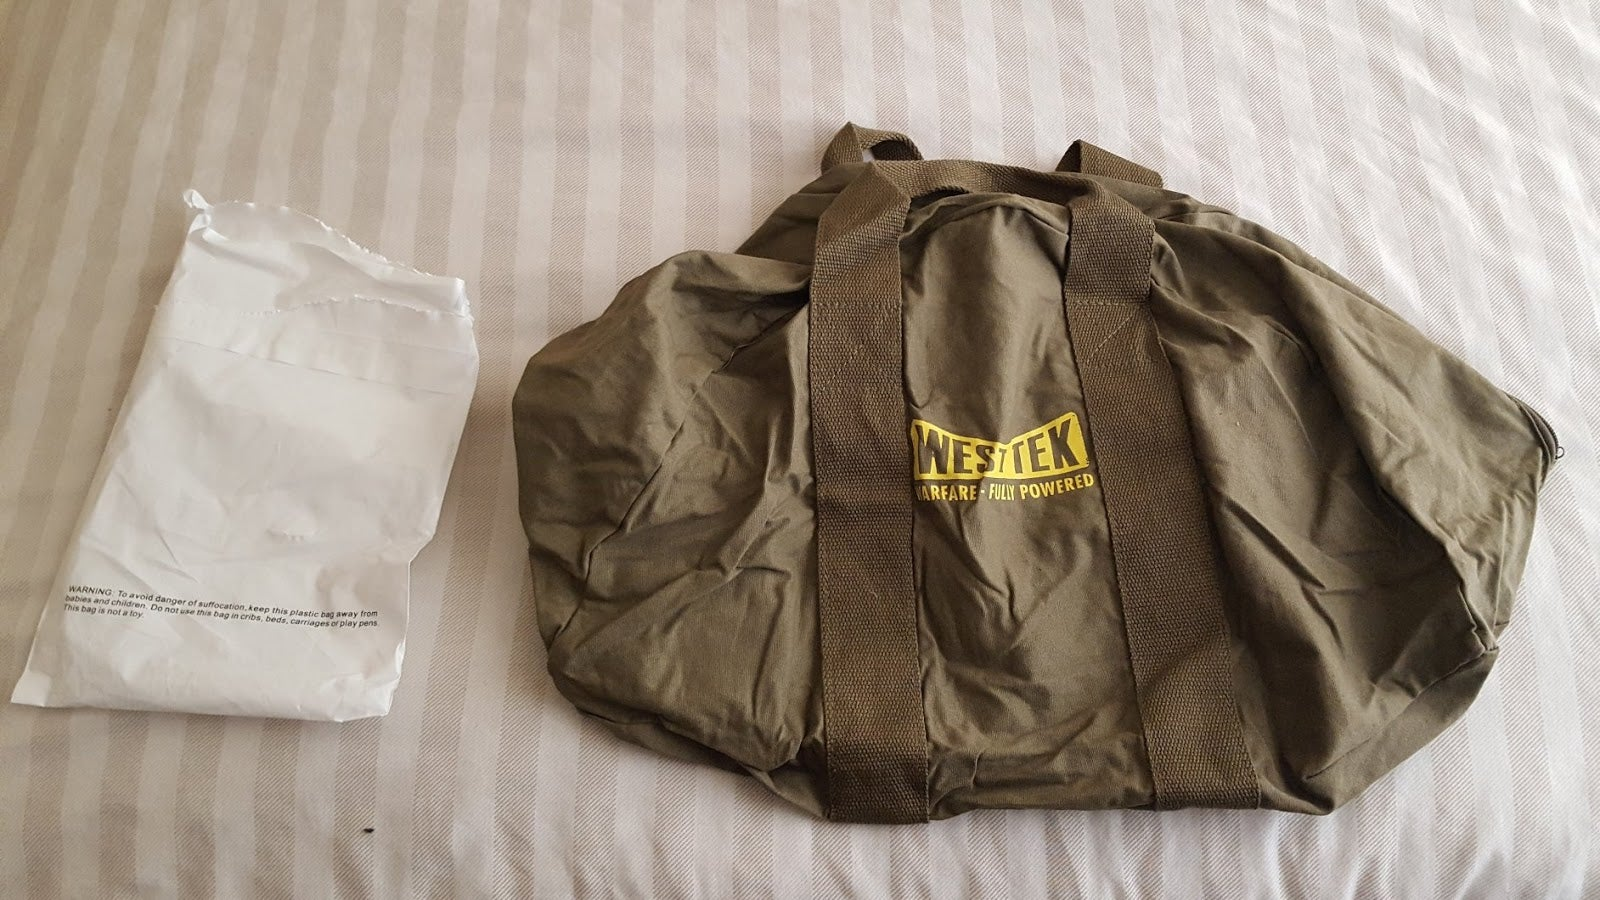 At Long Last, The Canvas Fallout 76 Bags Have Arrived